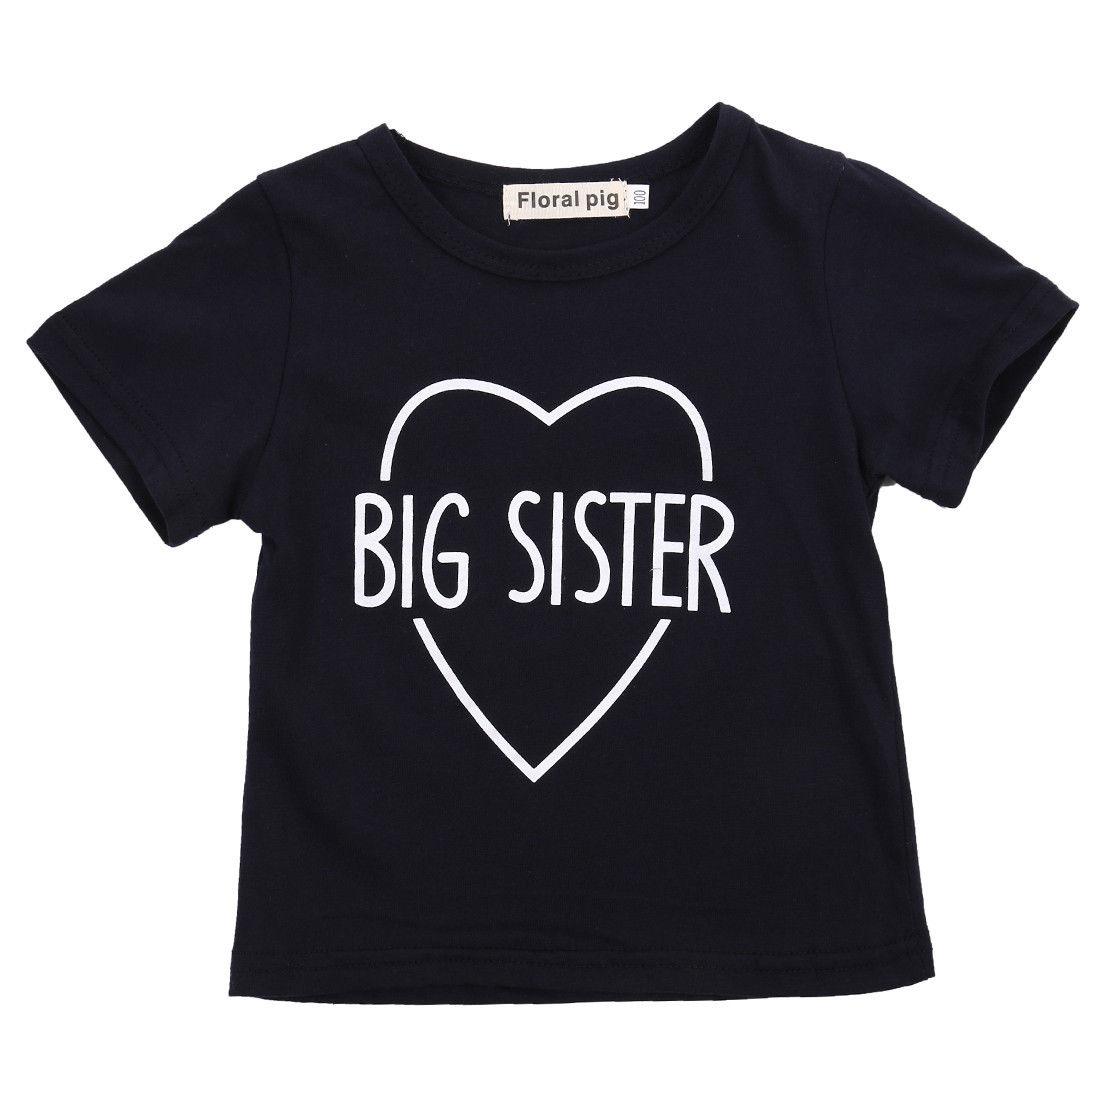 Baby boys girls short sleeve t-shirt,summer kids clothes,cotton letter printed ,Black Brother Sister child tops tees 3-36 M